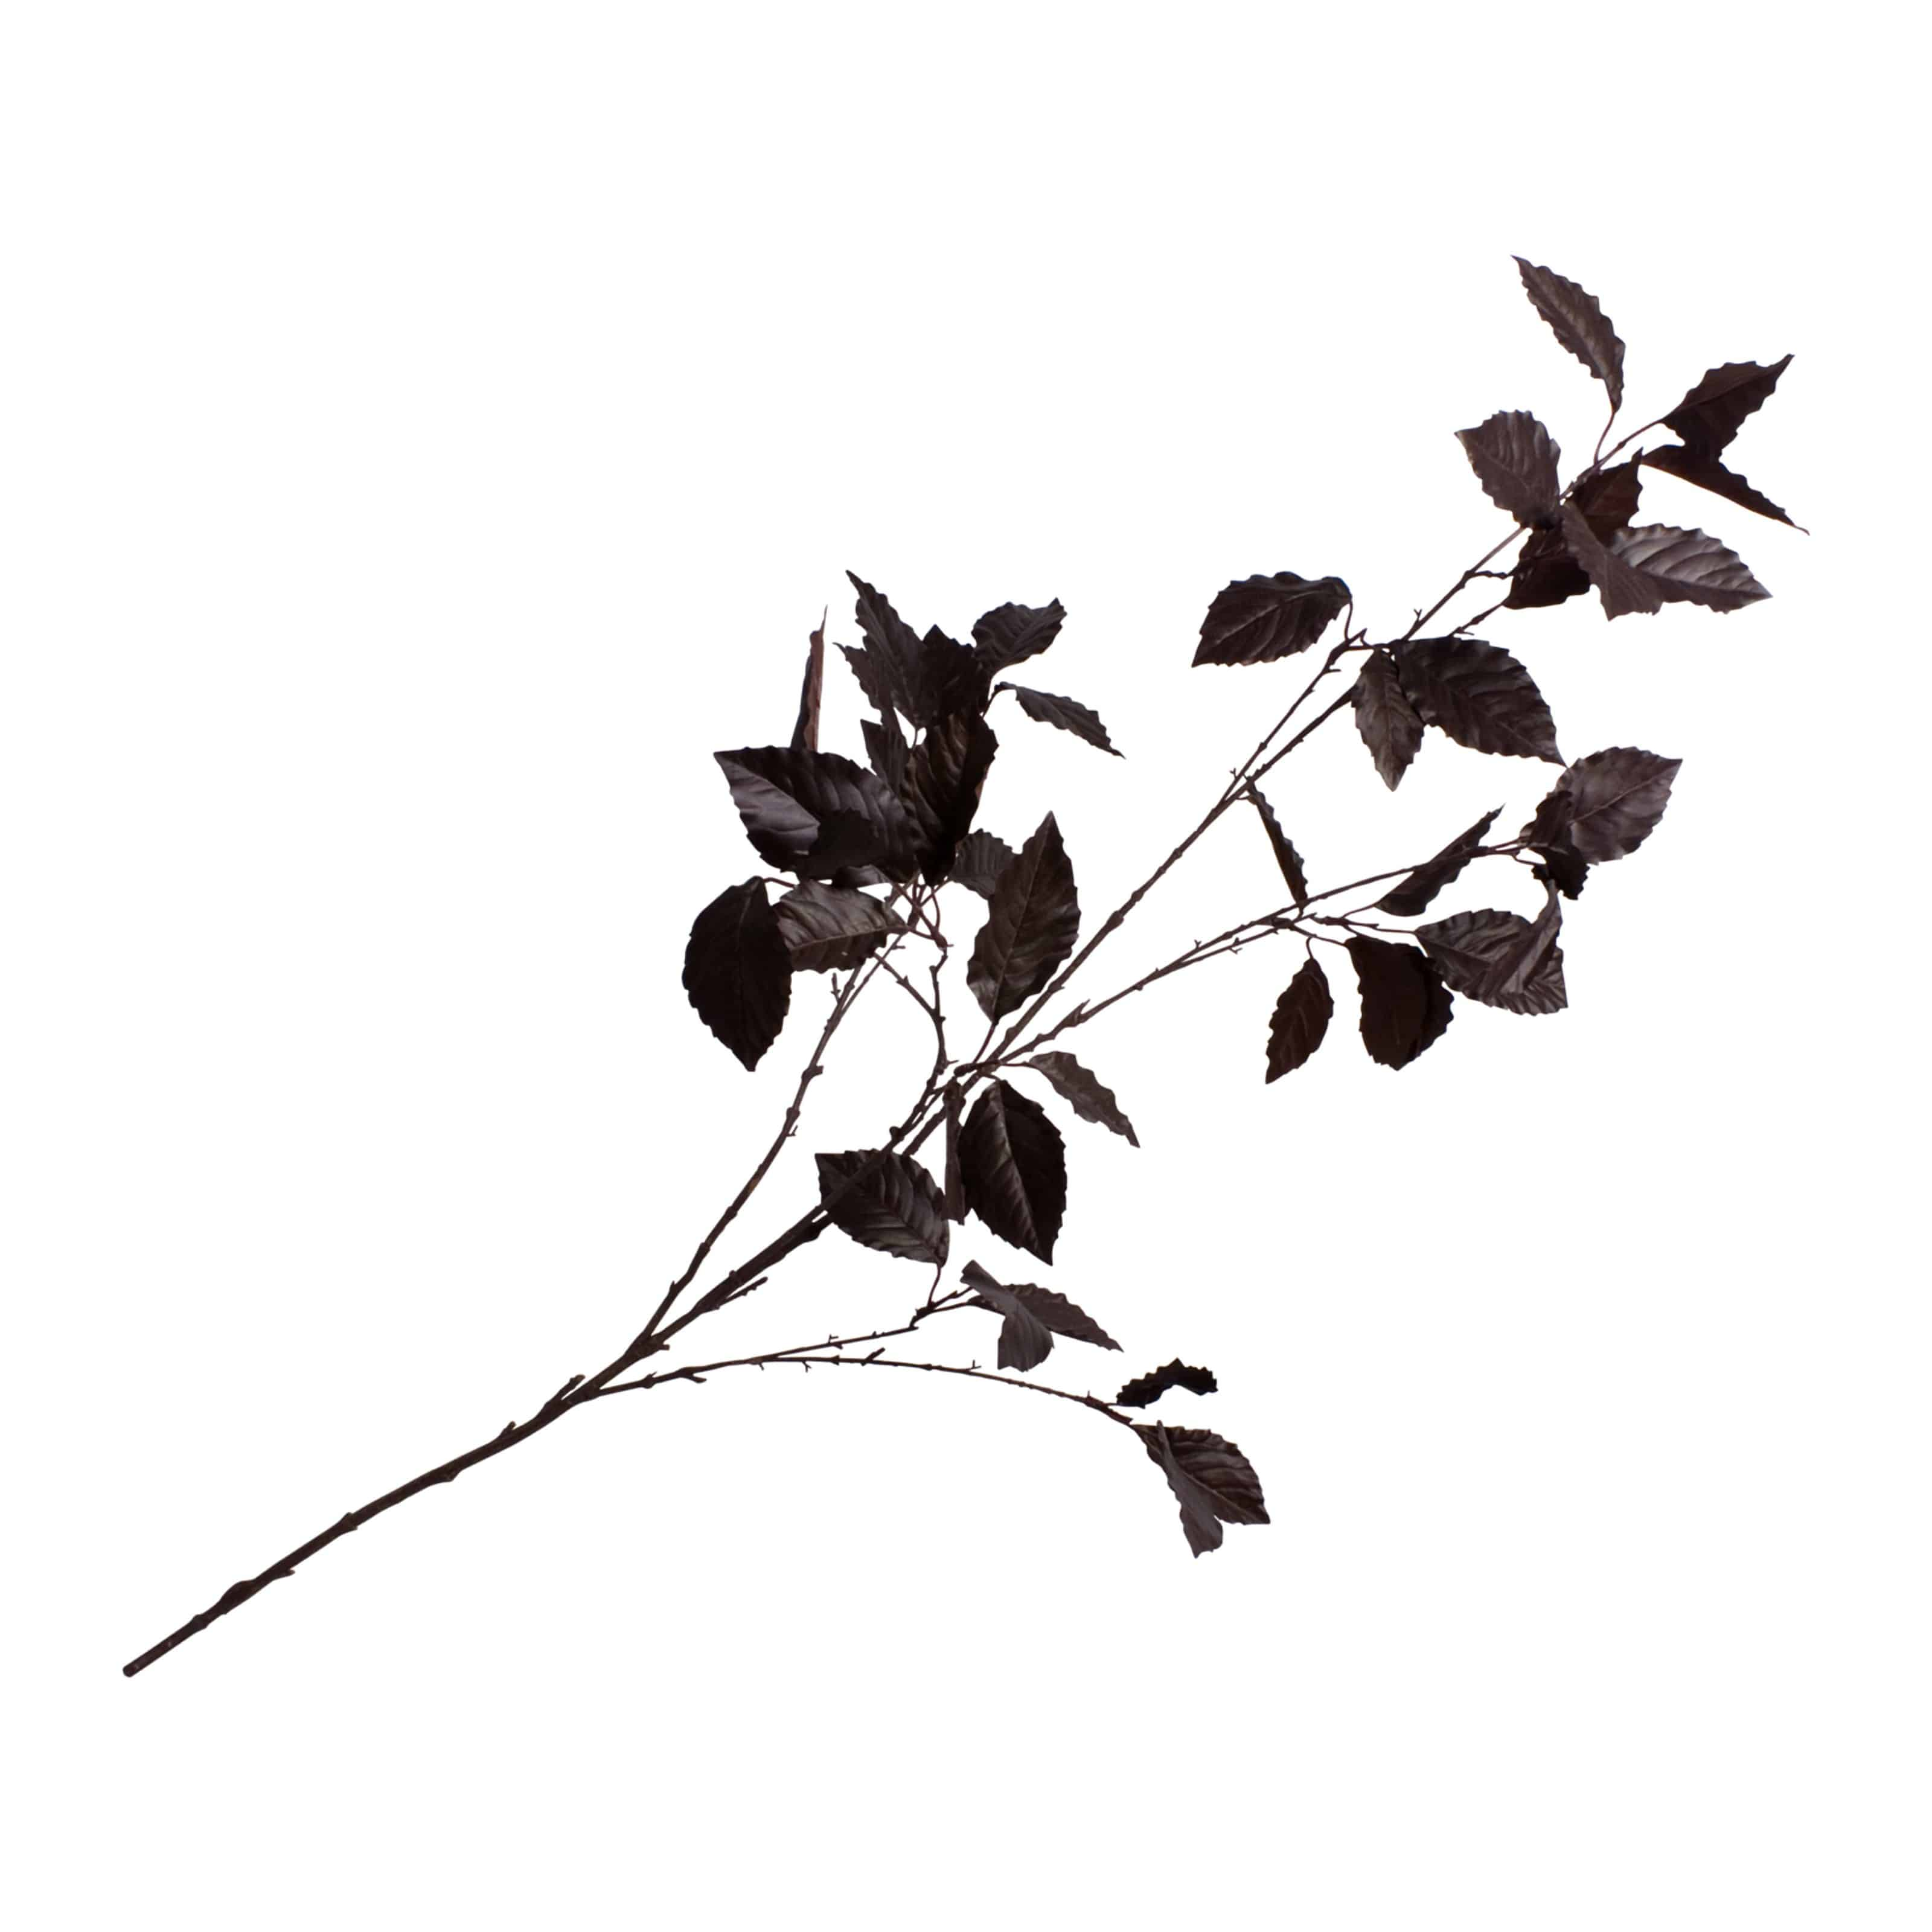 Buy online rich chocolate brown beech tree faux branch is perfect for adding shimmering tones. Exceptional foliage for creating your own arrangements.